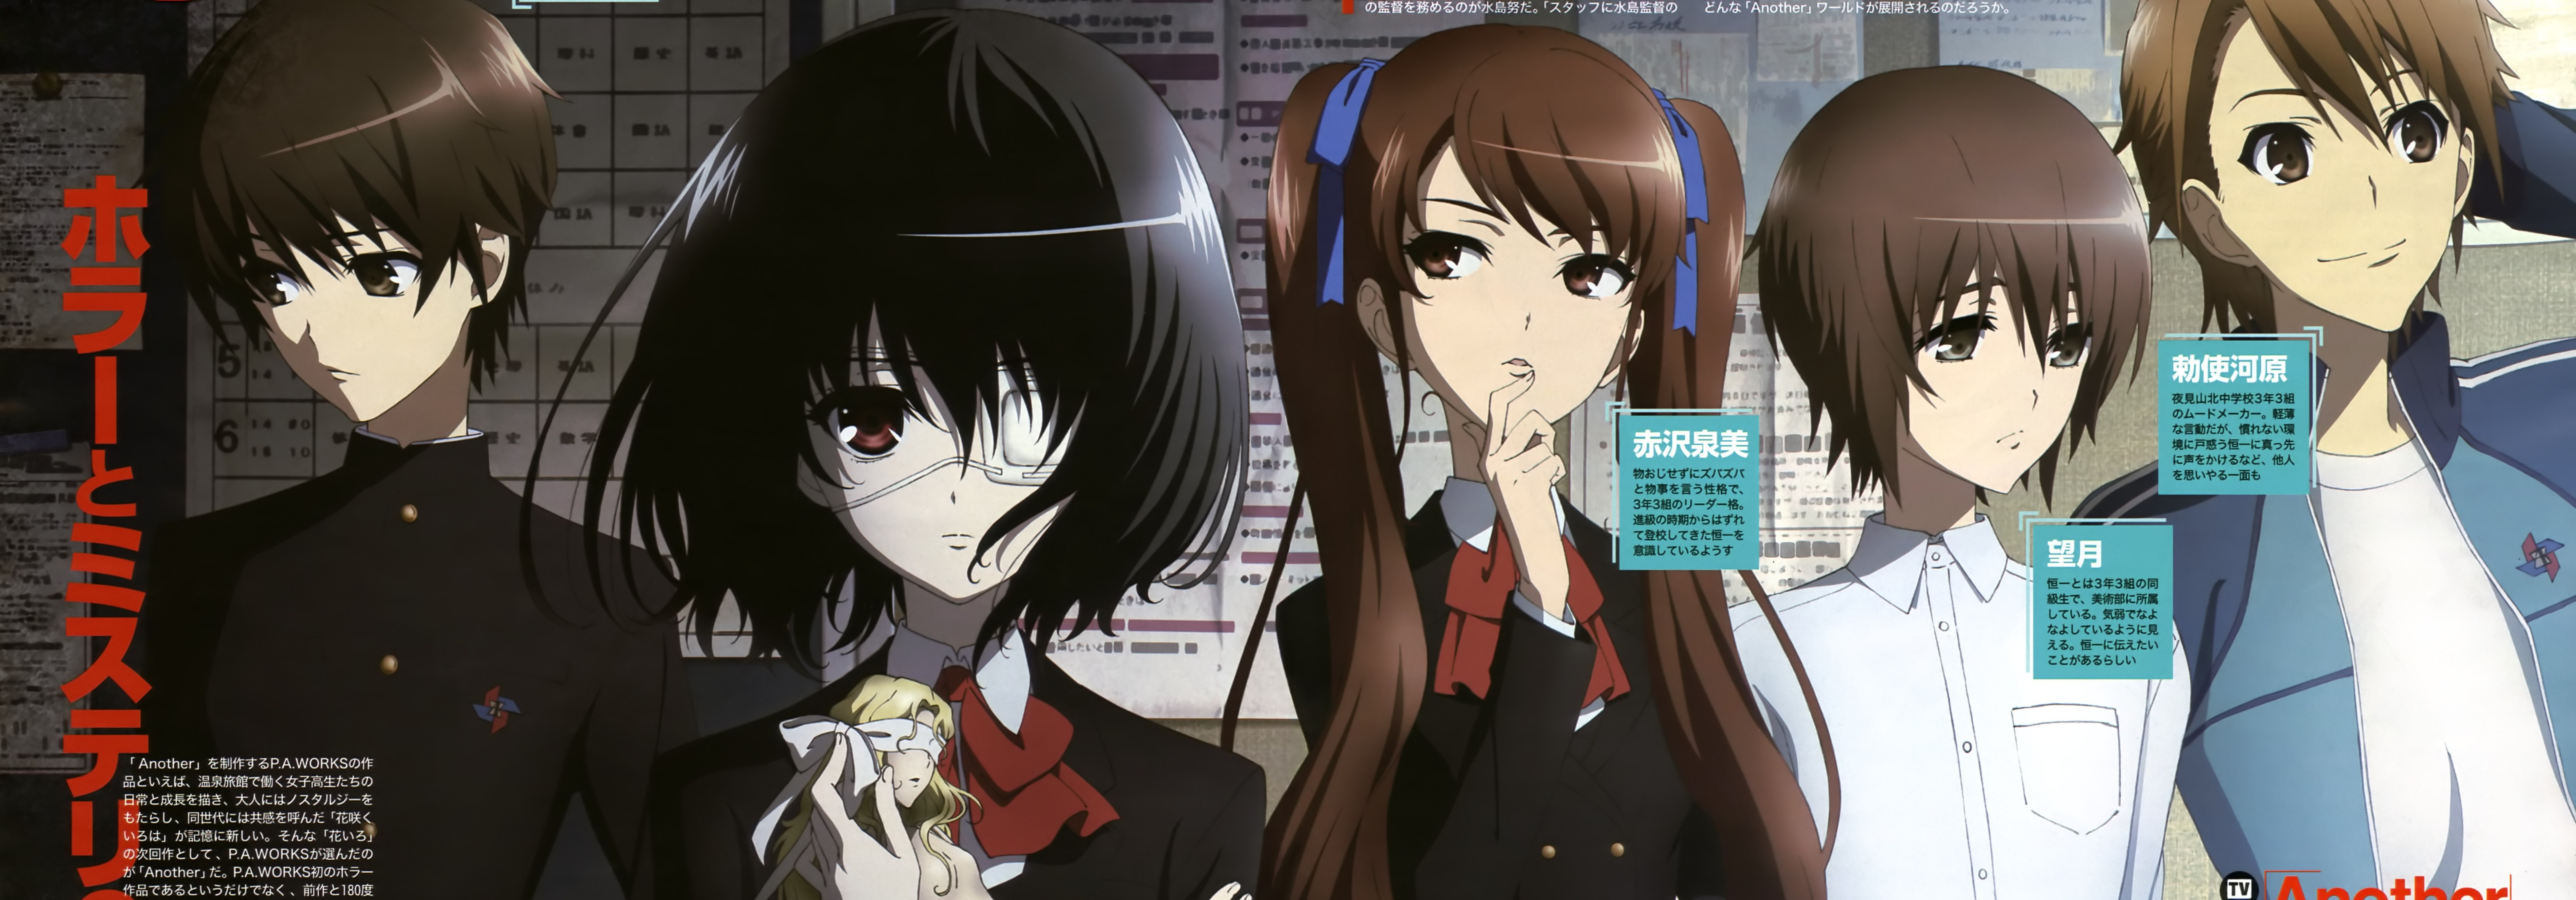 And You Thought There Is Never A Girl Online Wallpaper Anime News Another Anime Alliance